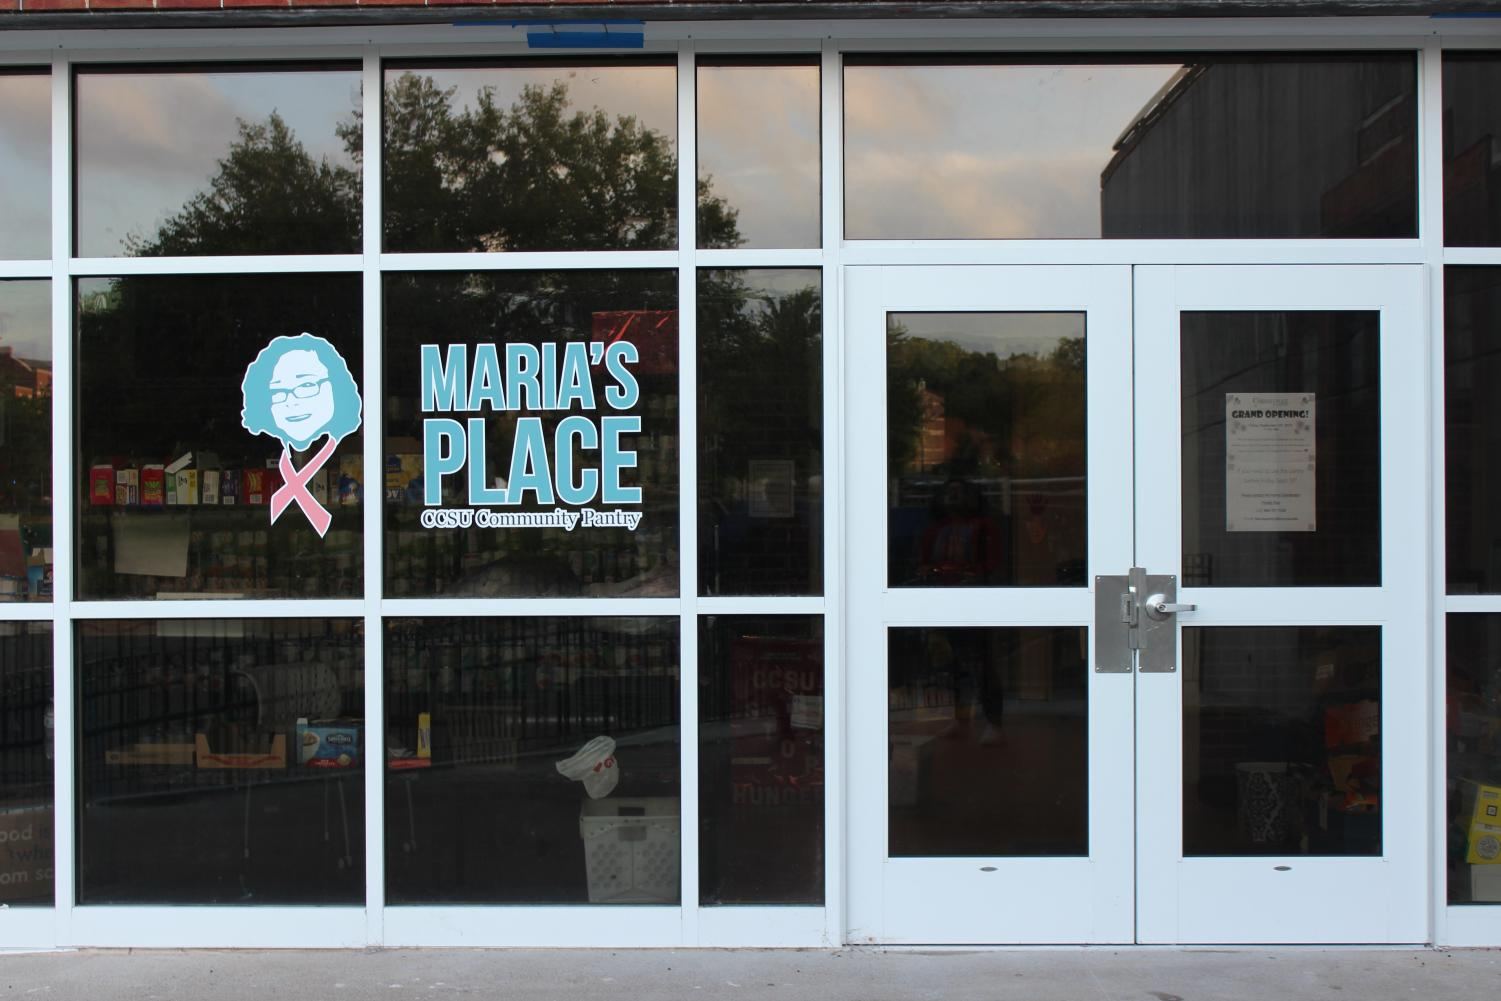 Maria's Place offers assist to Central students, faculty and staff without question.